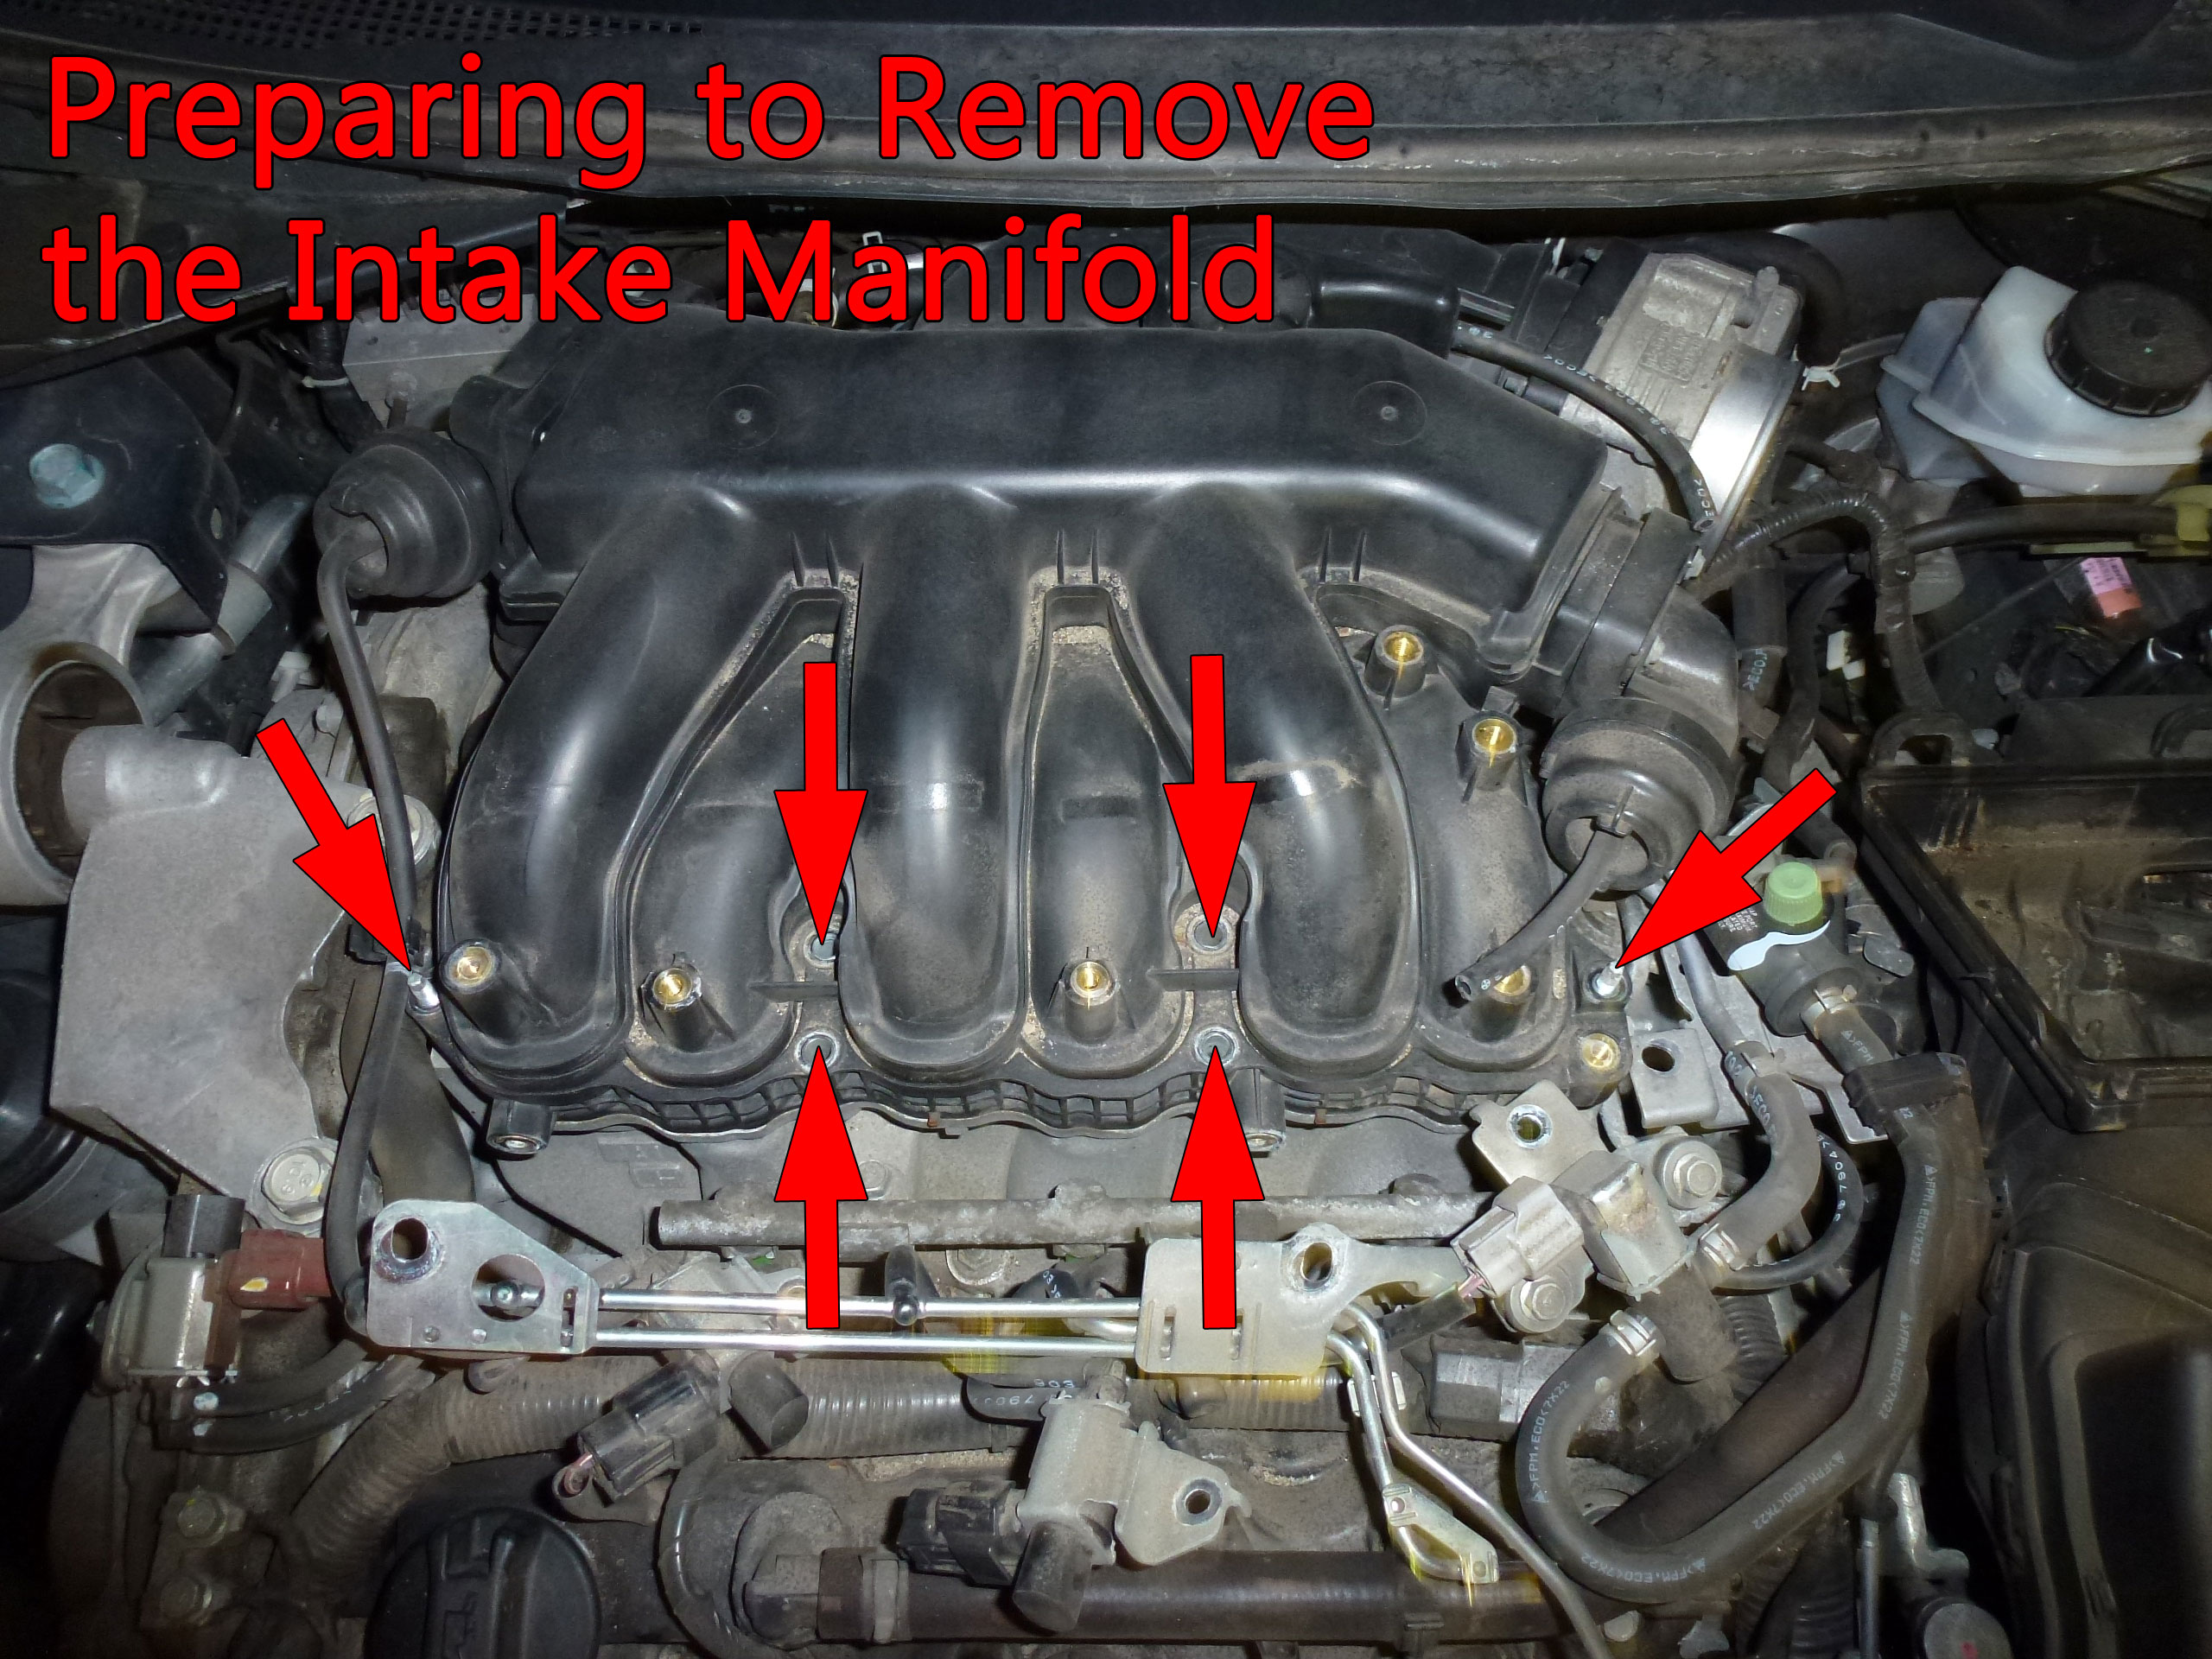 Remove the bolts and nuts that attach the upper manifold to the lower manifold. The outer two fasteners are nuts and the other four are bolts. At this point, there are a few more steps before the manifold can be removed.